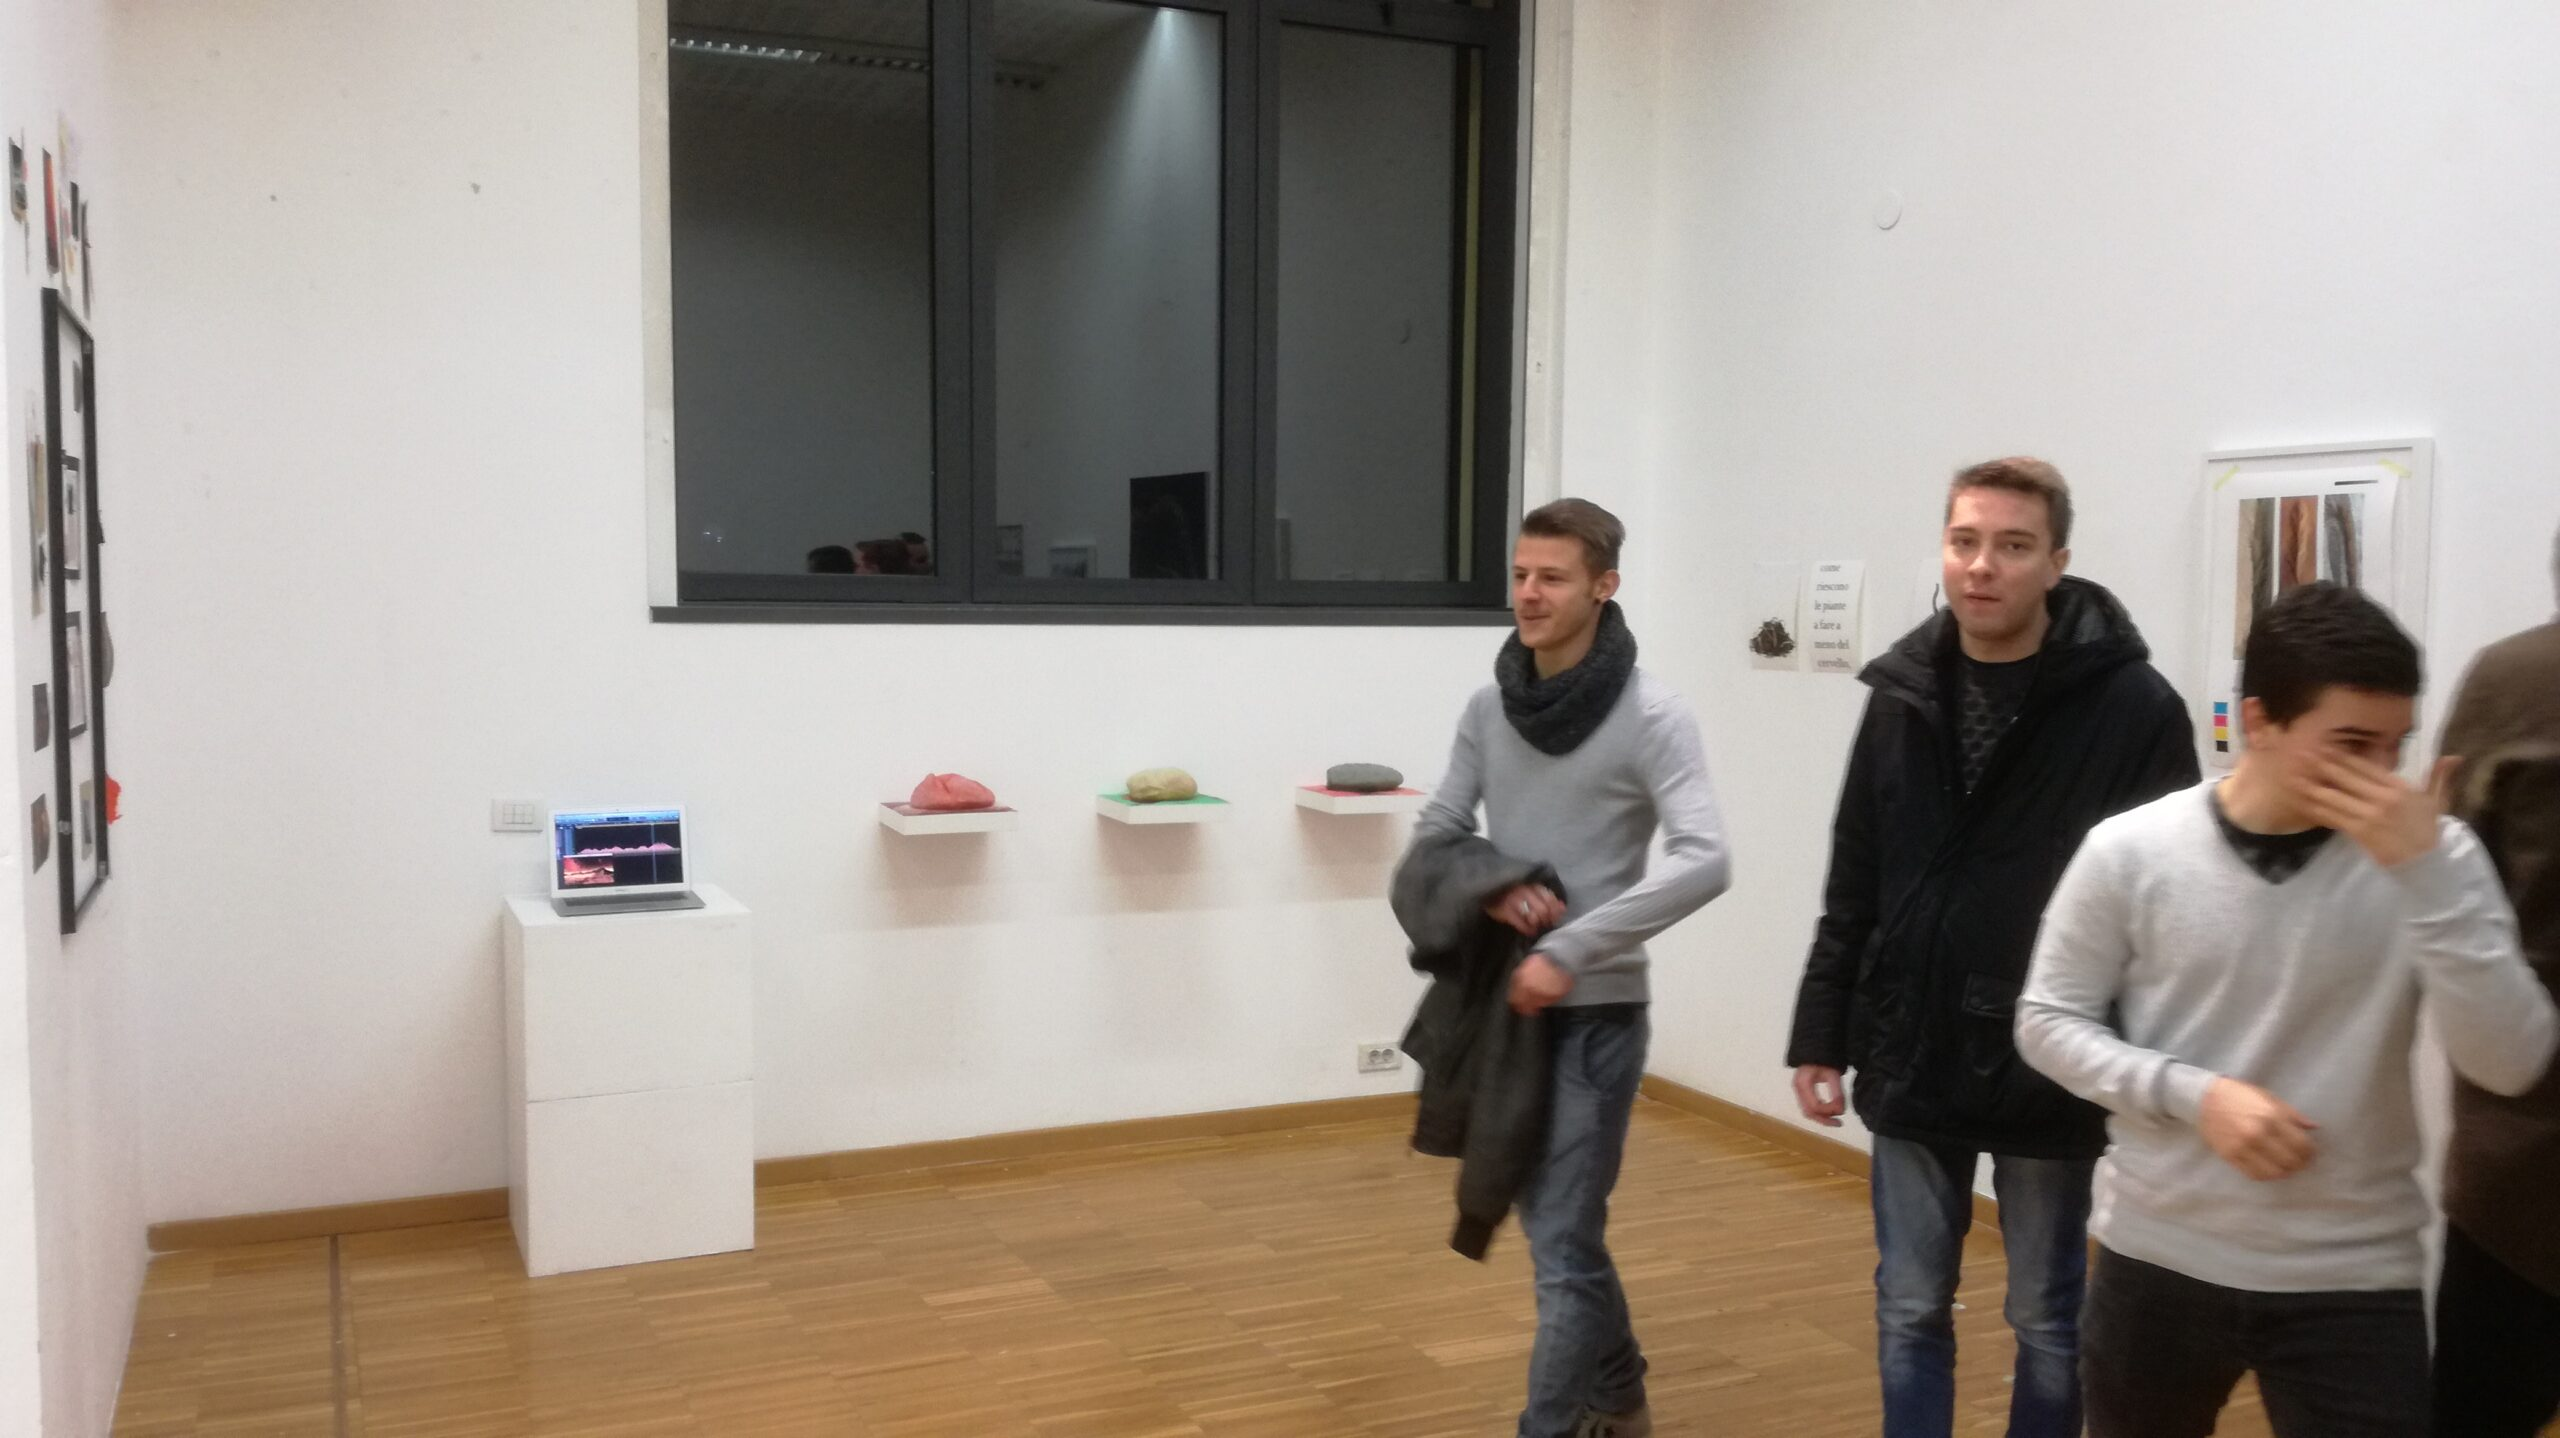 Mostra in accademia